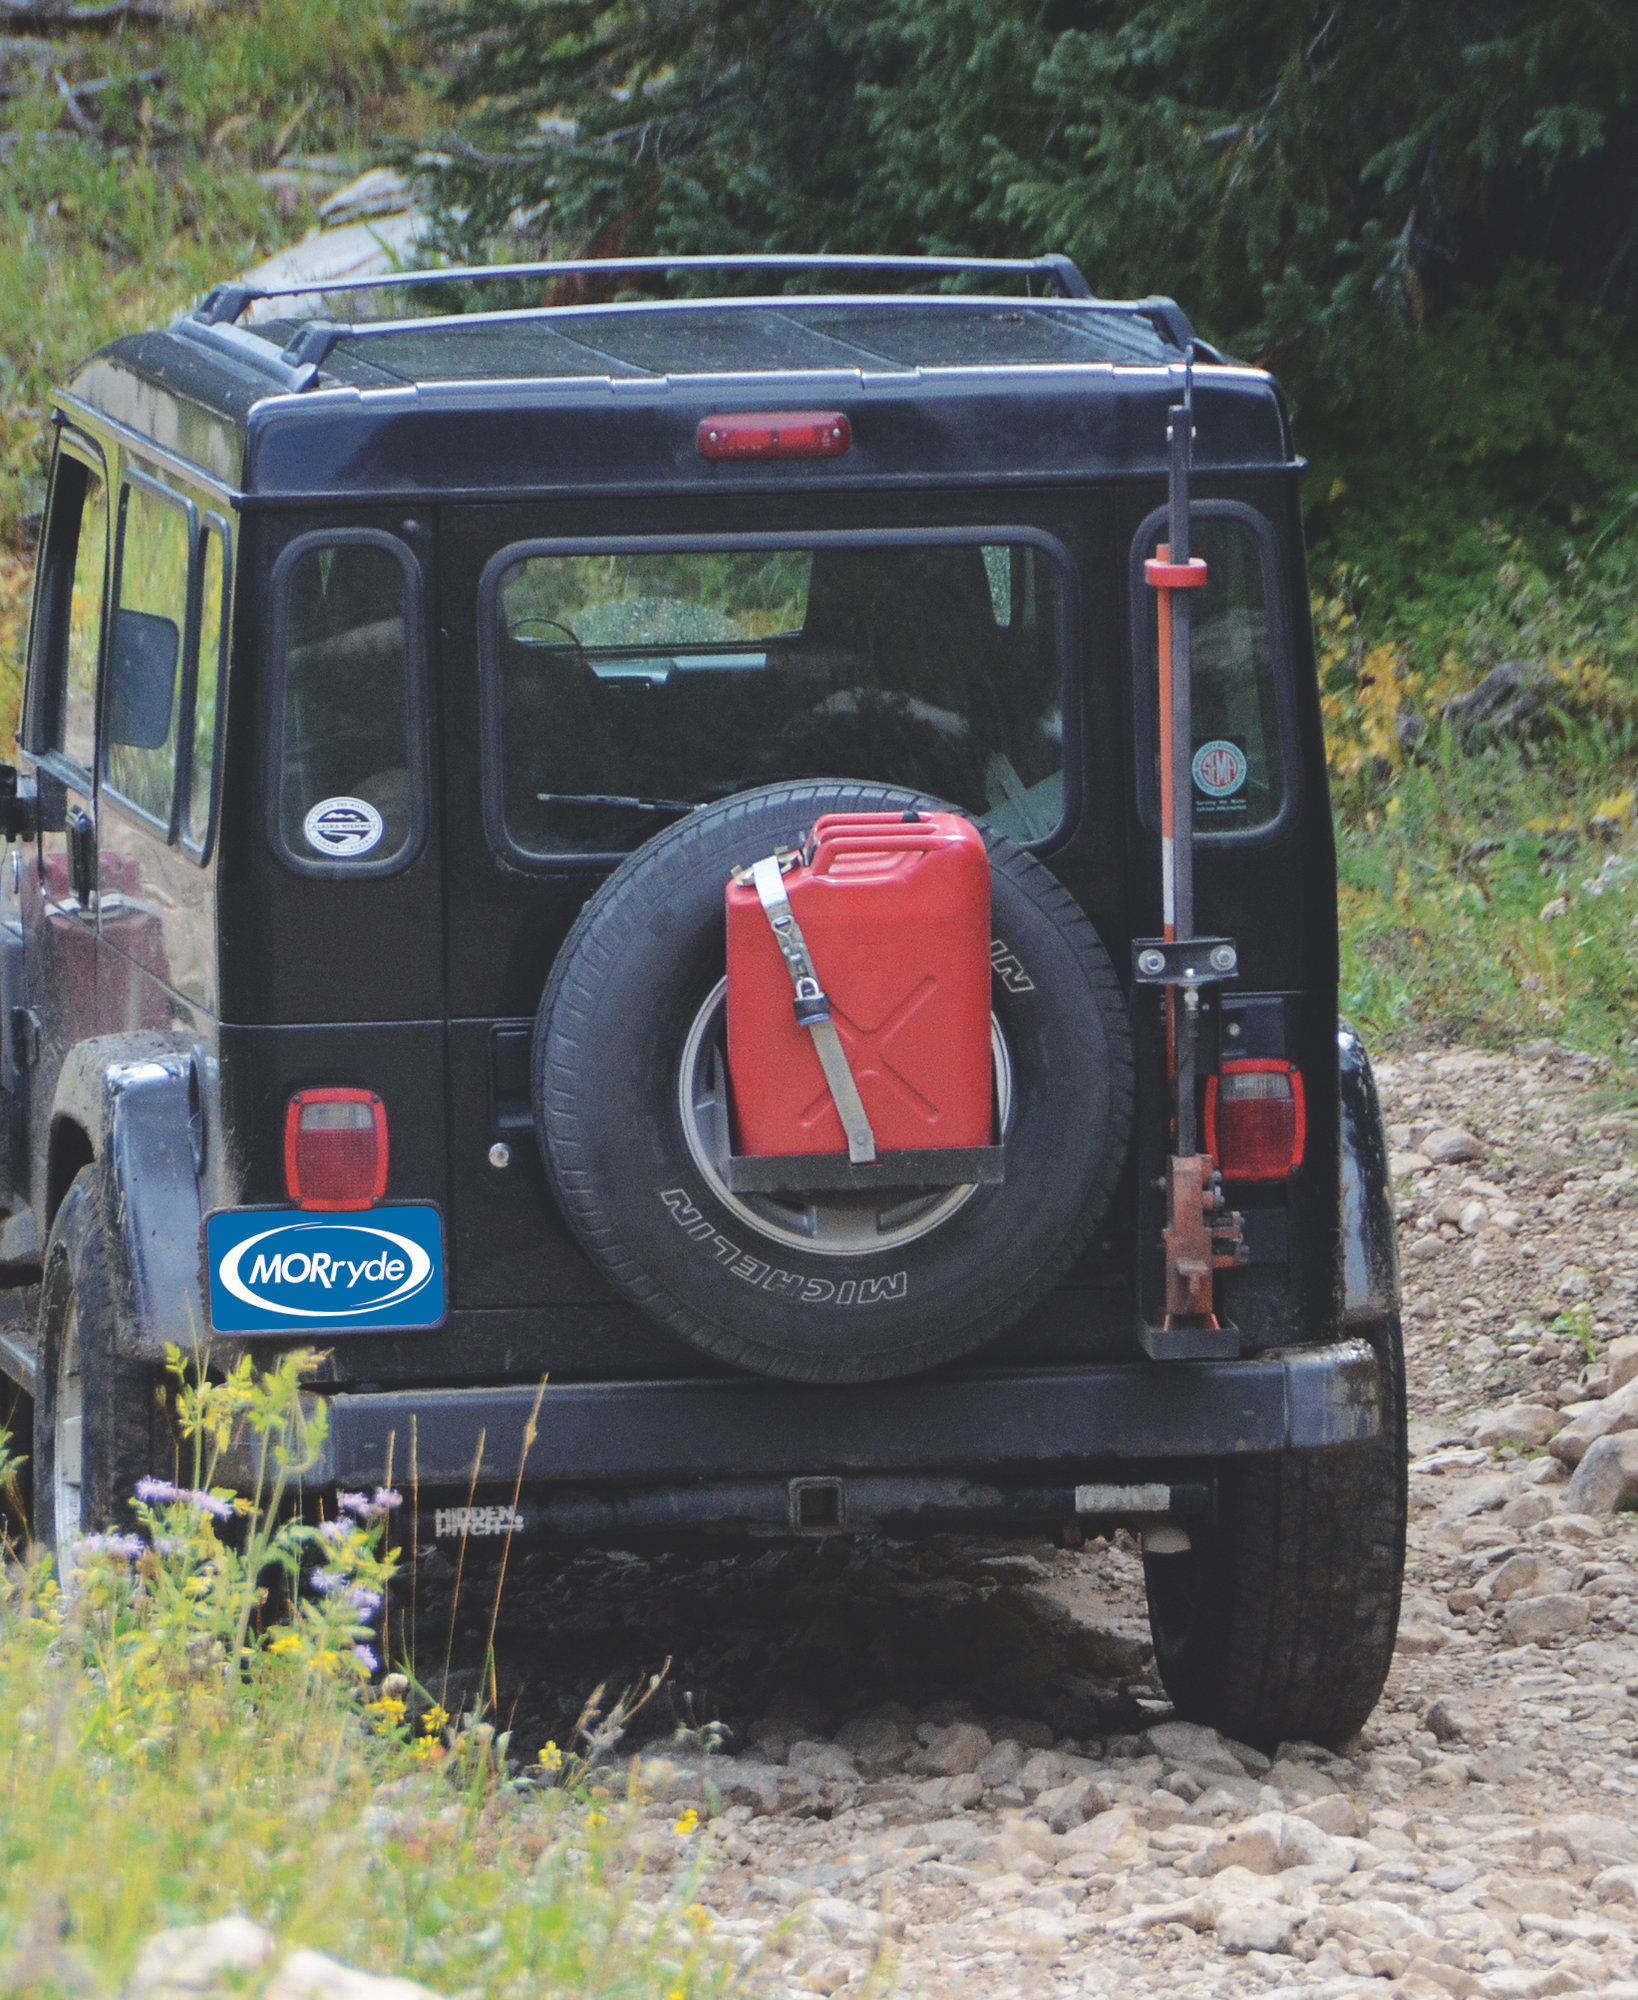 Spare Tire Jerry Can Mount : spare, jerry, mount, MORryde, JP54-005, Spare, Jerry, Mount, 87-18, Vehicles, Quadratec